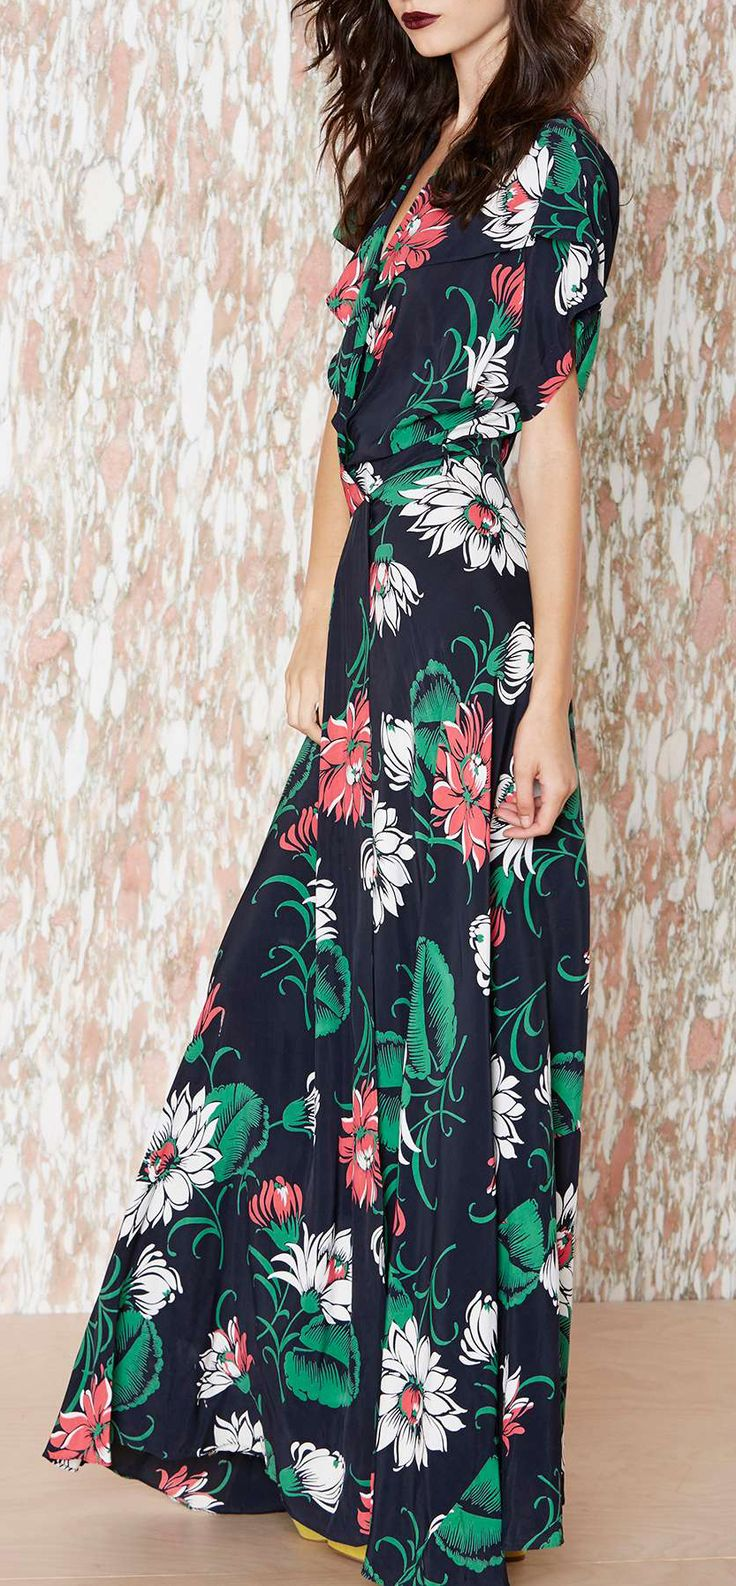 94 Best Dress Me Up Images On Pinterest Fashion Vintage Feminine Mooi Printing Premium Sweater Top Garden Bunny S Fleur Maxi Lover The Pattern Would Want A Different Flower Print For